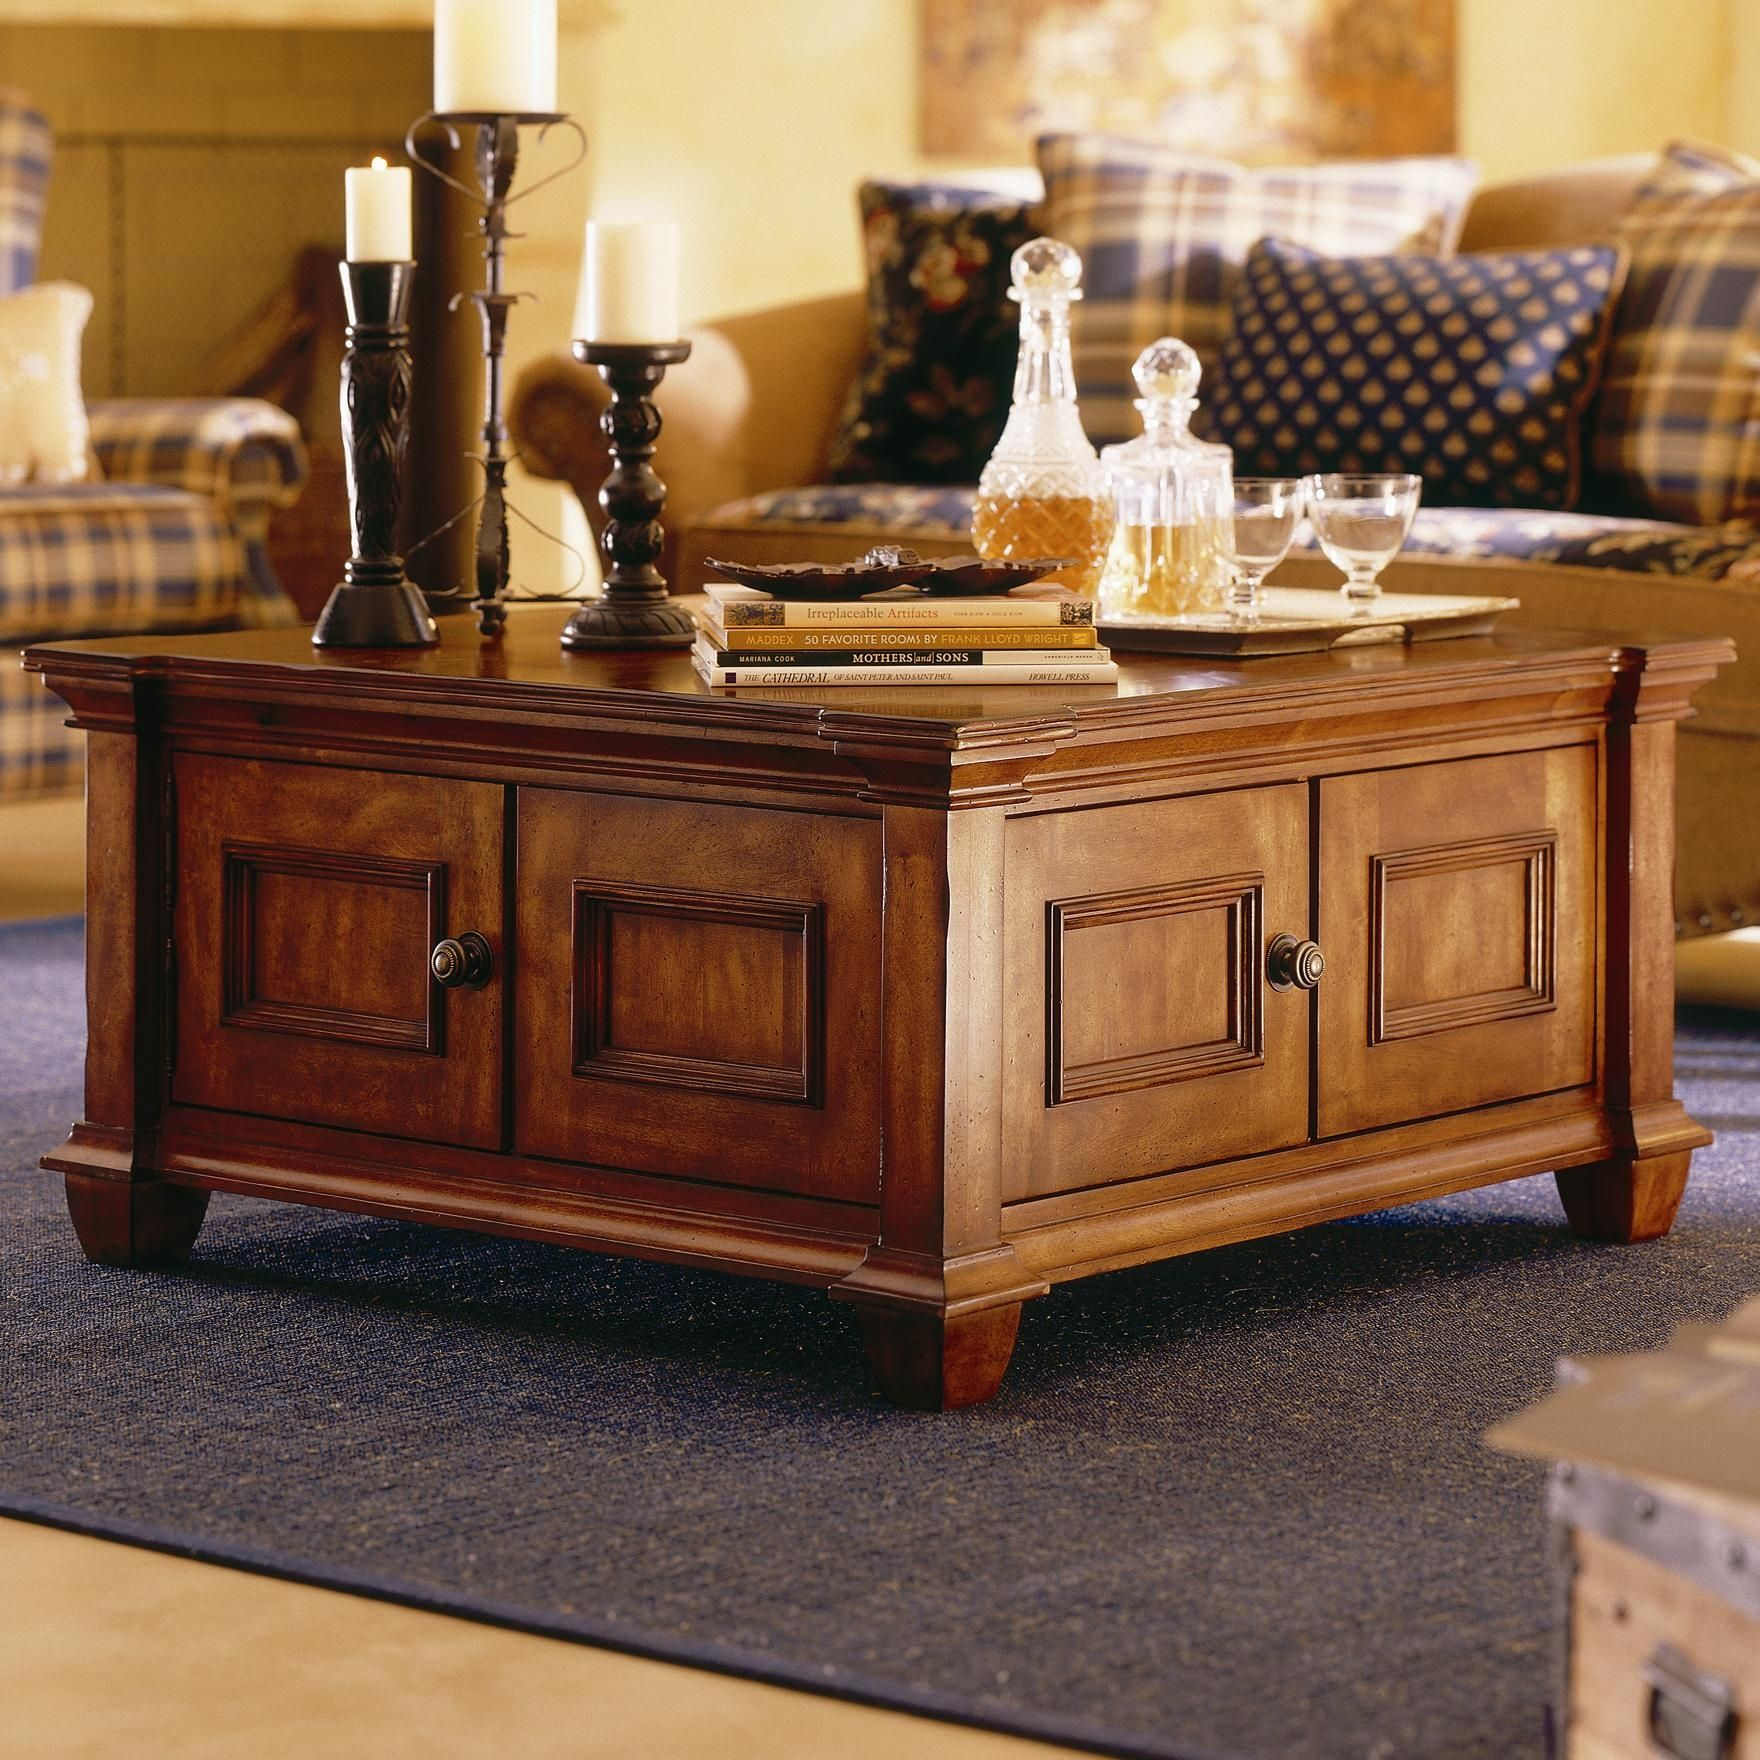 Square Coffee Table With Storage Drawers Httpezserverus - Square coffee table with storage cubes